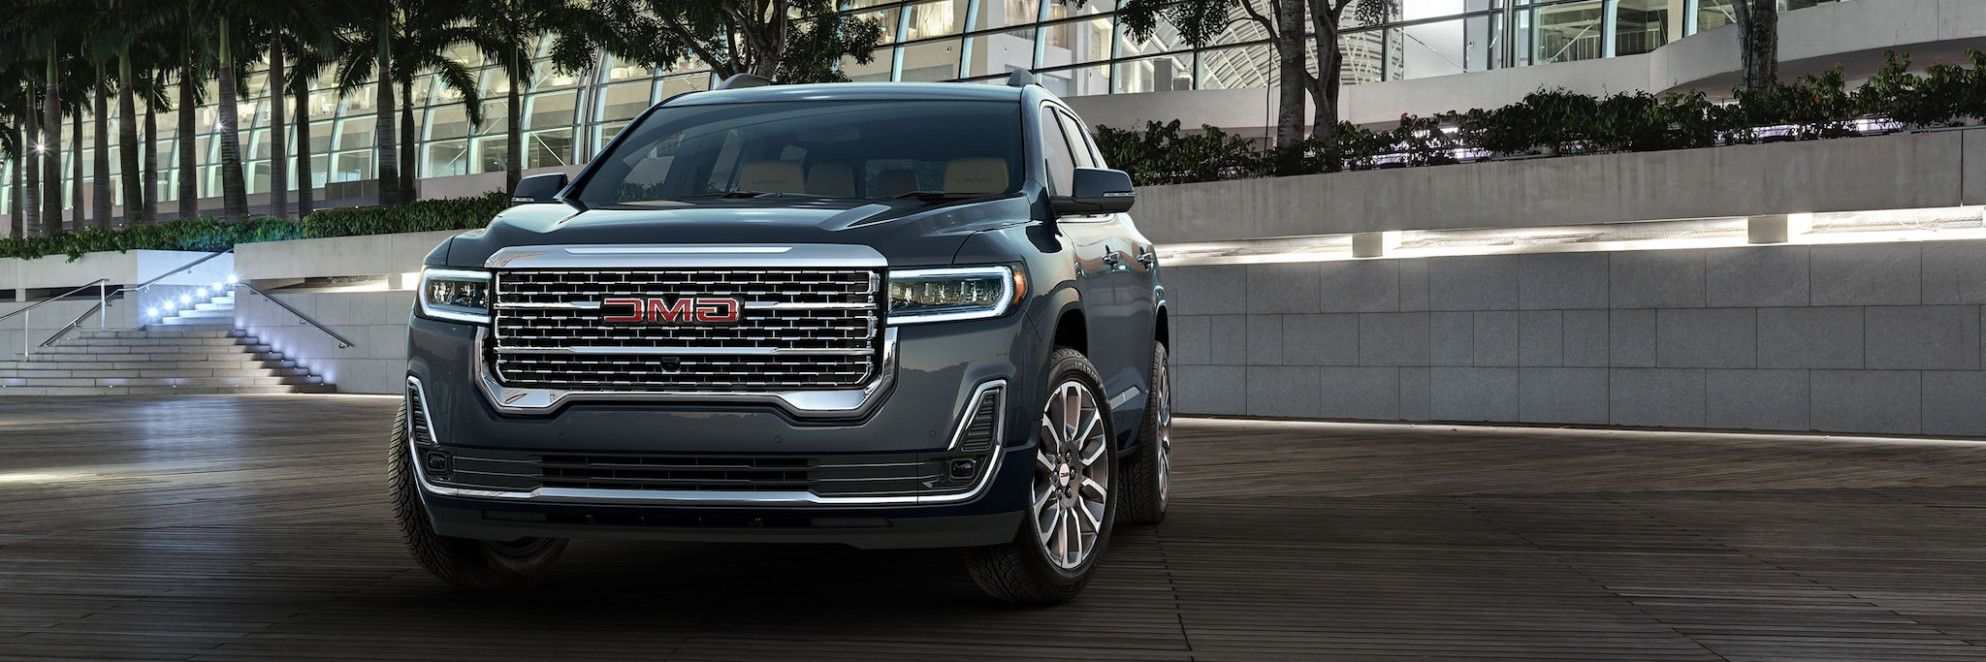 The 15 Secrets About 2020 Gmc Acadia Release Date Only A With Images Acadia Denali Chevy Dealers Automotive Detailing